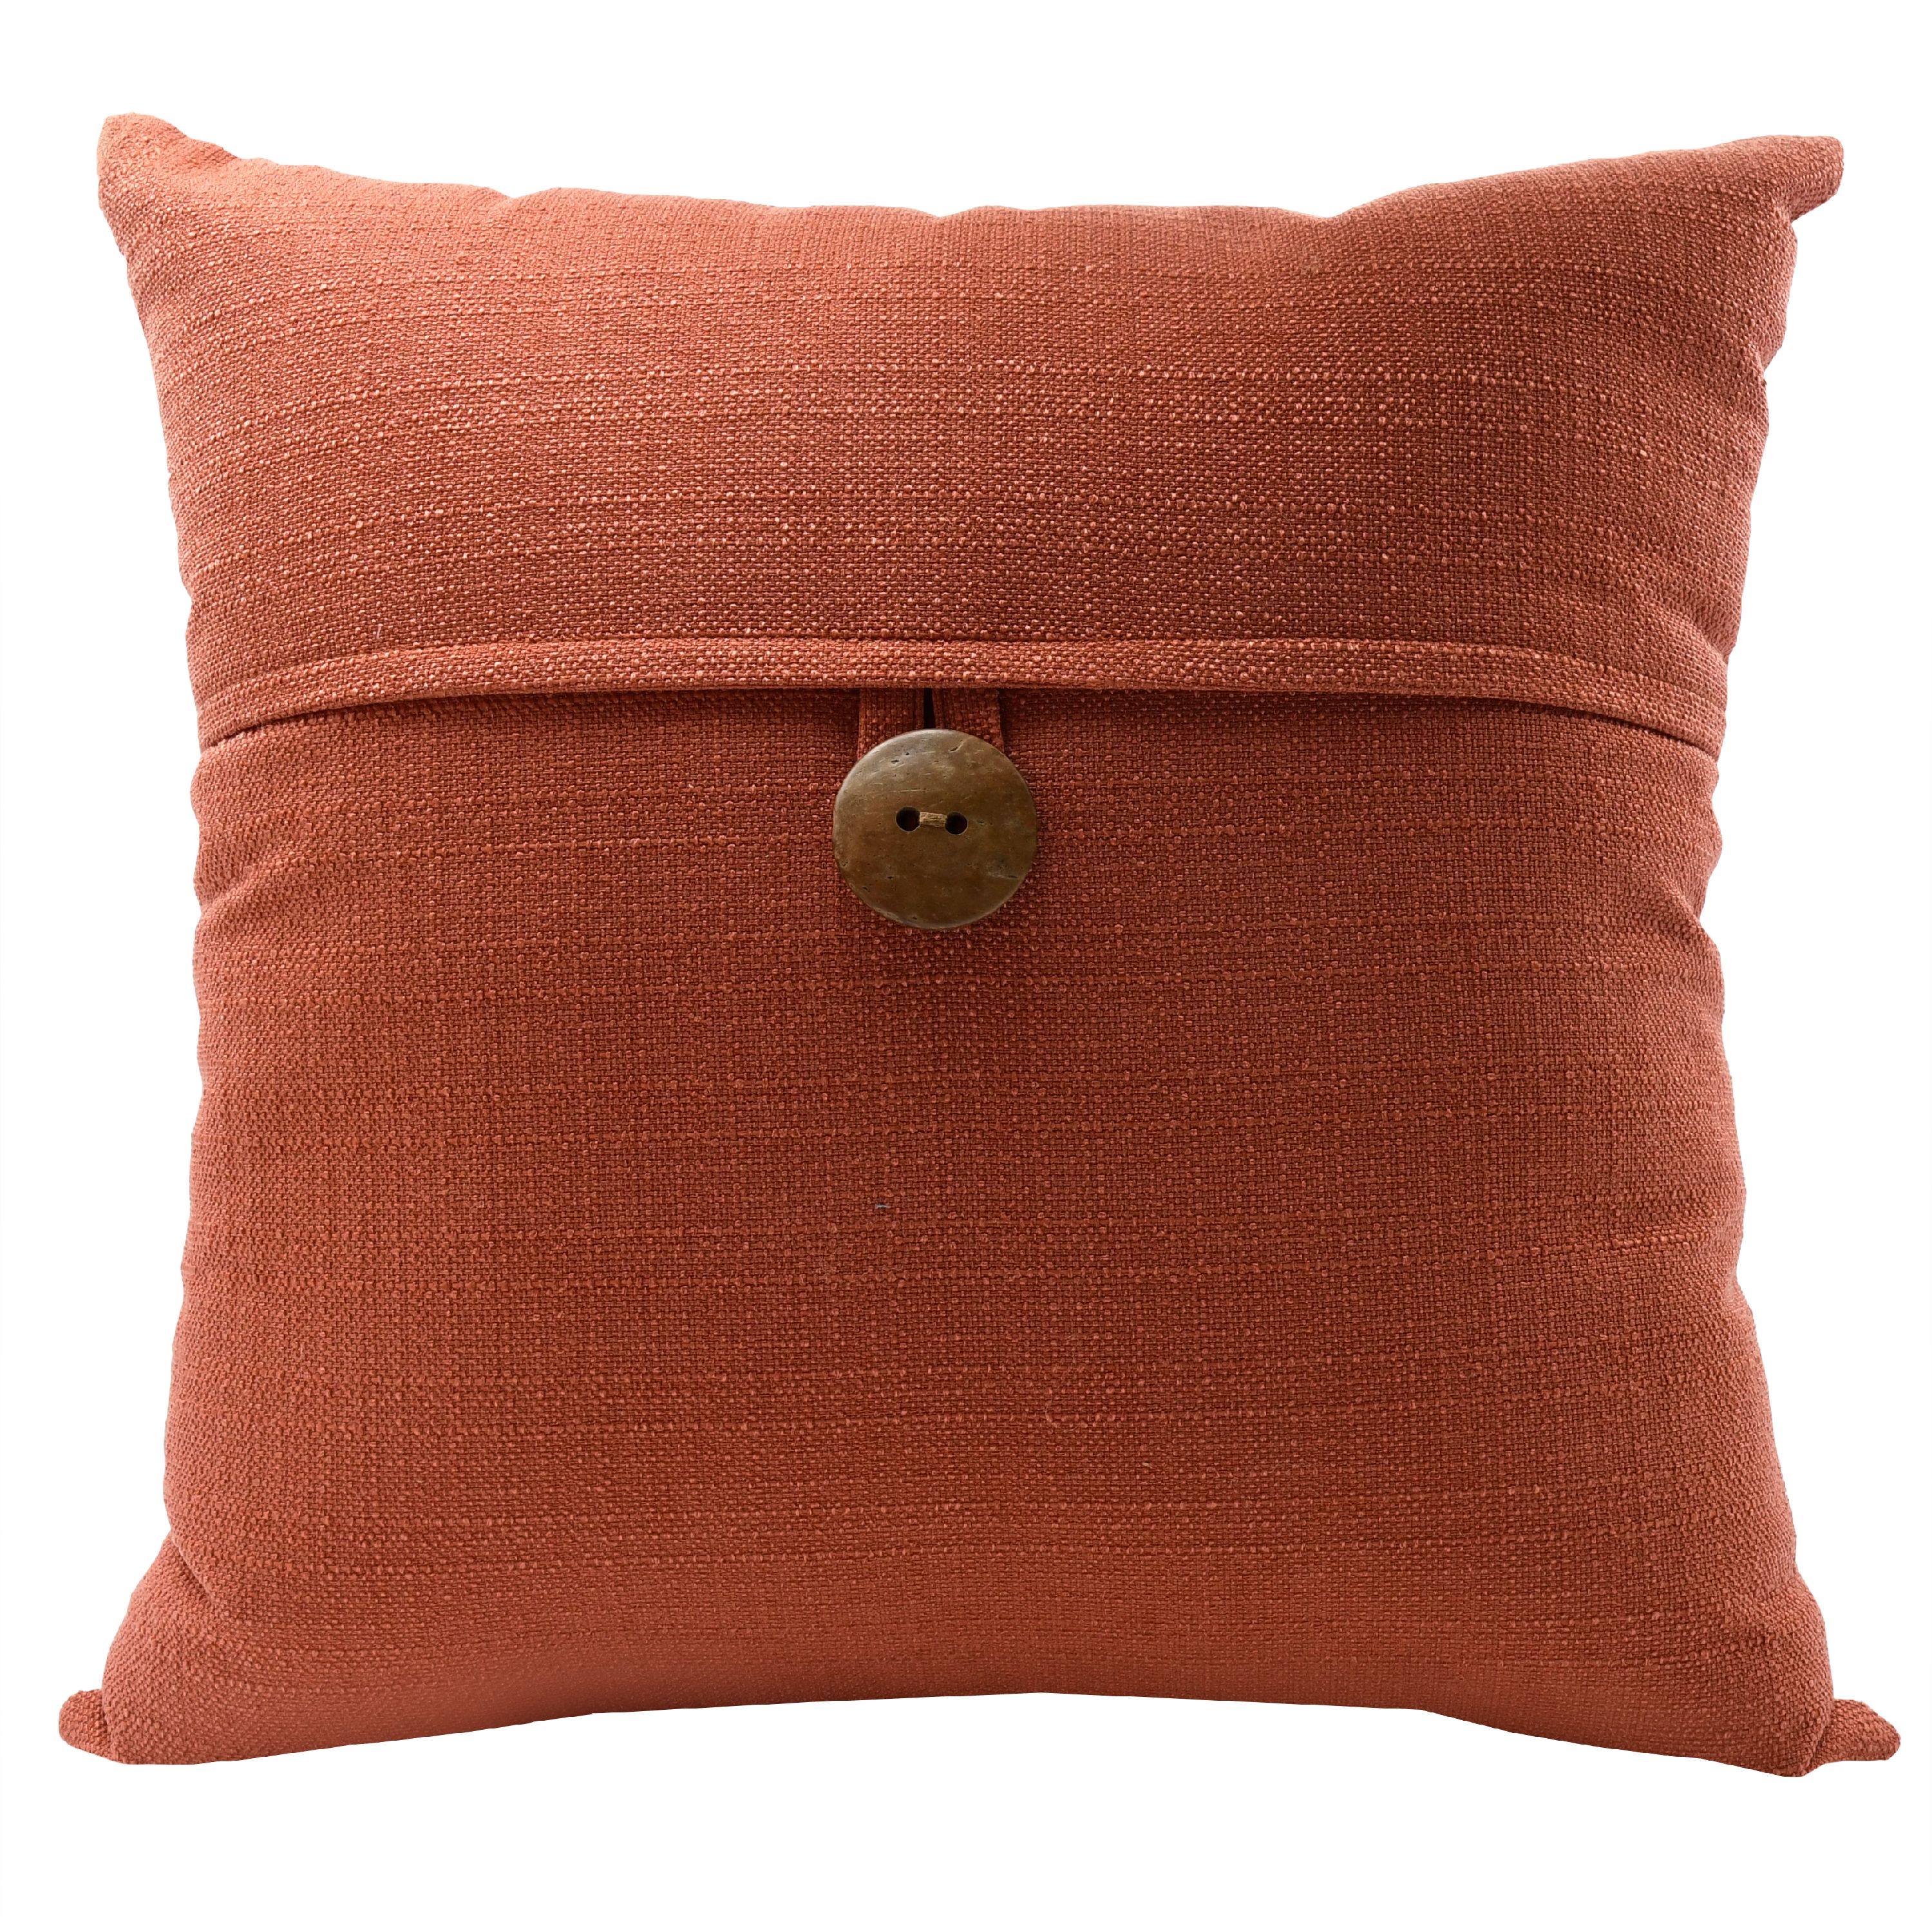 """Mainstays Dynasty Coconut Button Accent Decorative Throw Pillow, 18"""" x 18"""", Turquoise"""